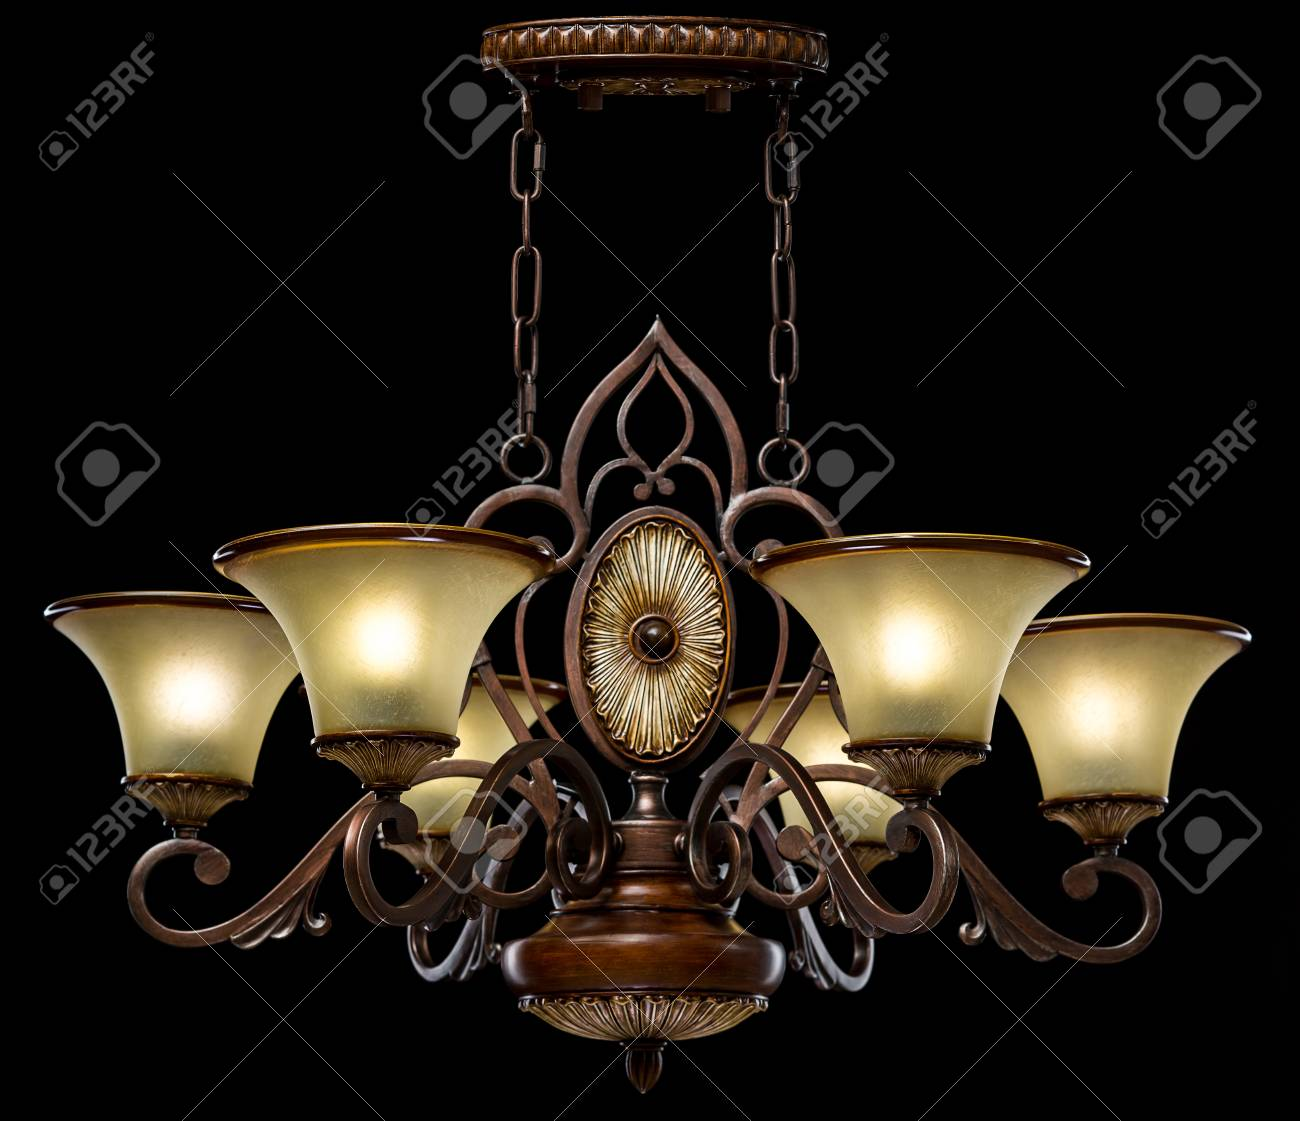 Chandelier in country style isolated on black background chandelier chandelier in country style isolated on black background chandelier lamp for the living room interior aloadofball Images